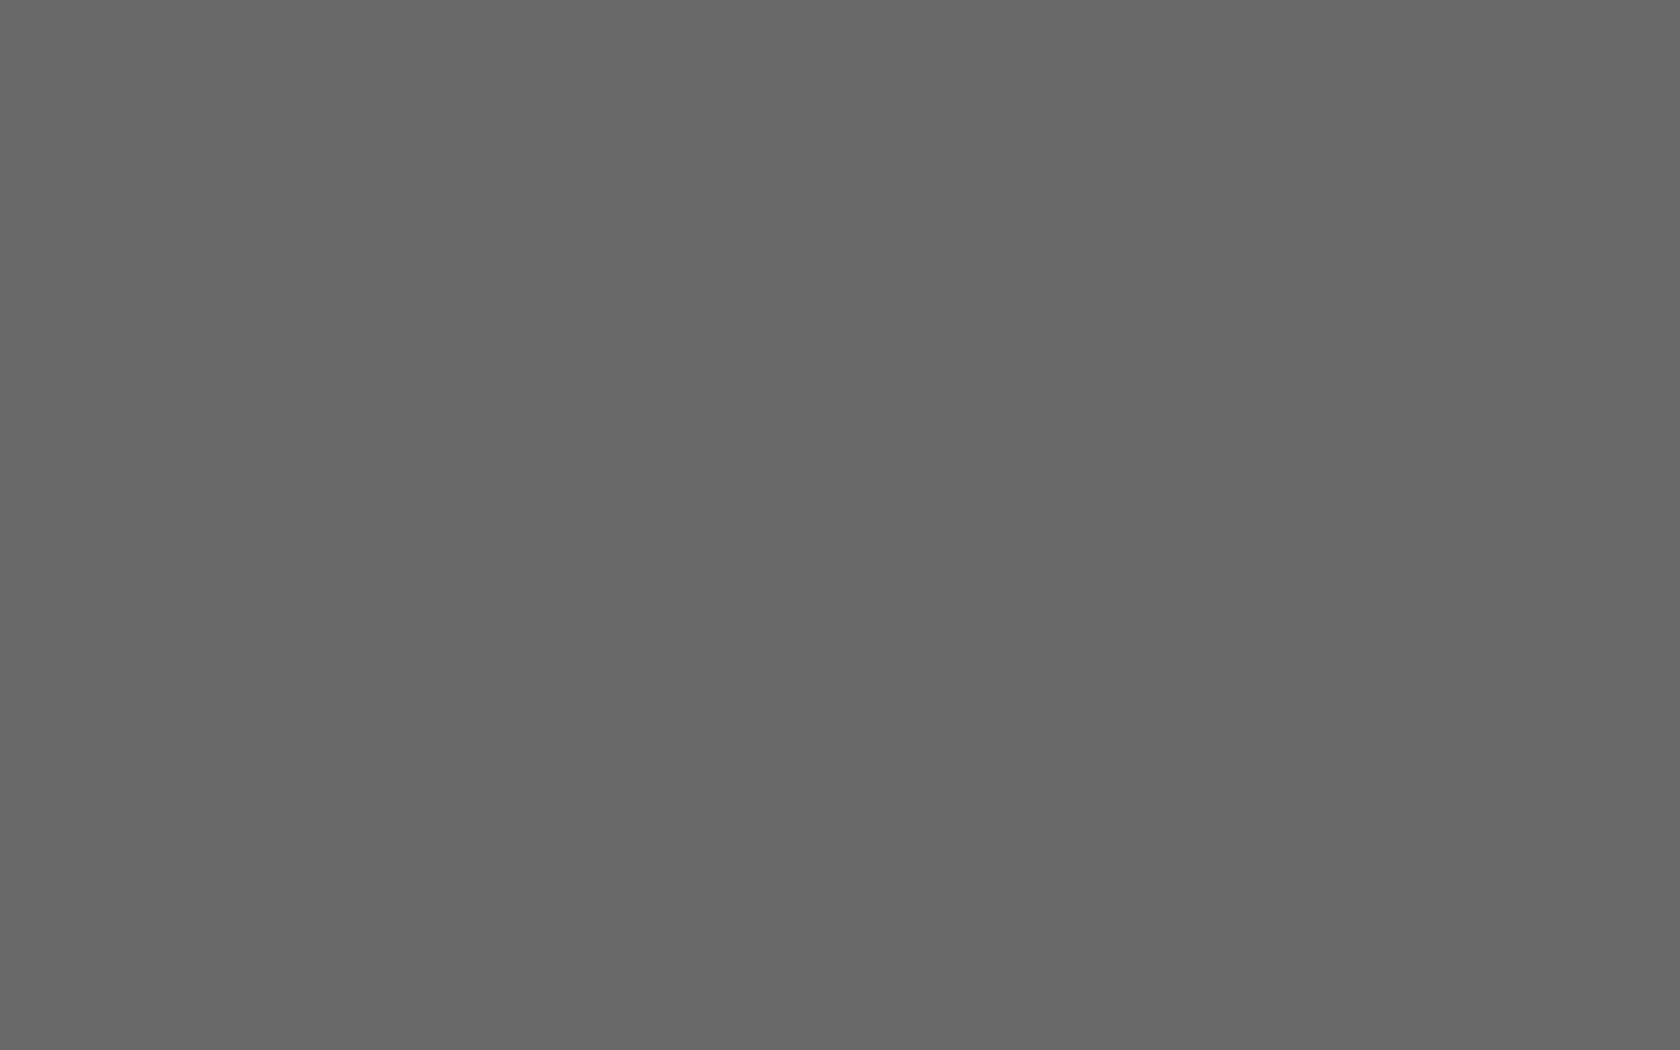 1680x1050 Dim Gray Solid Color Background